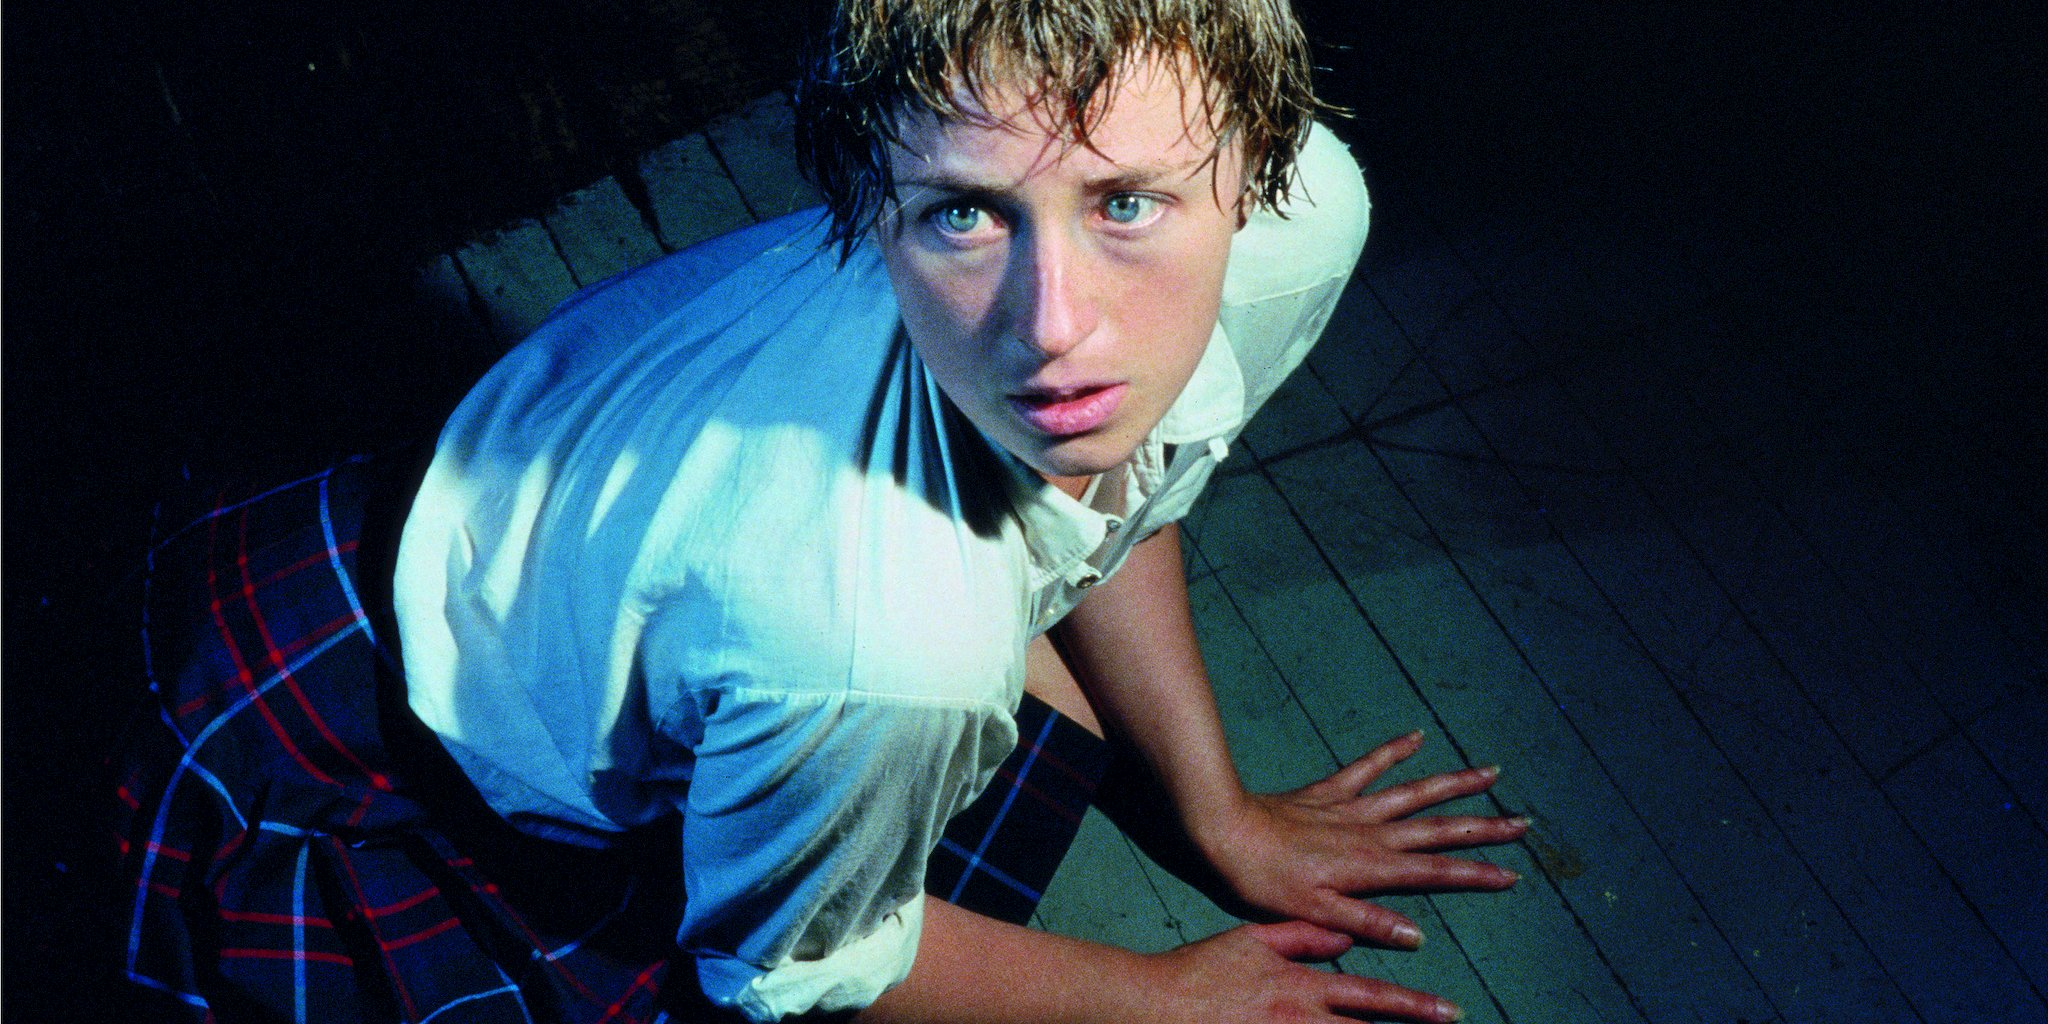 11cindy-sherman-still1-superJumbo